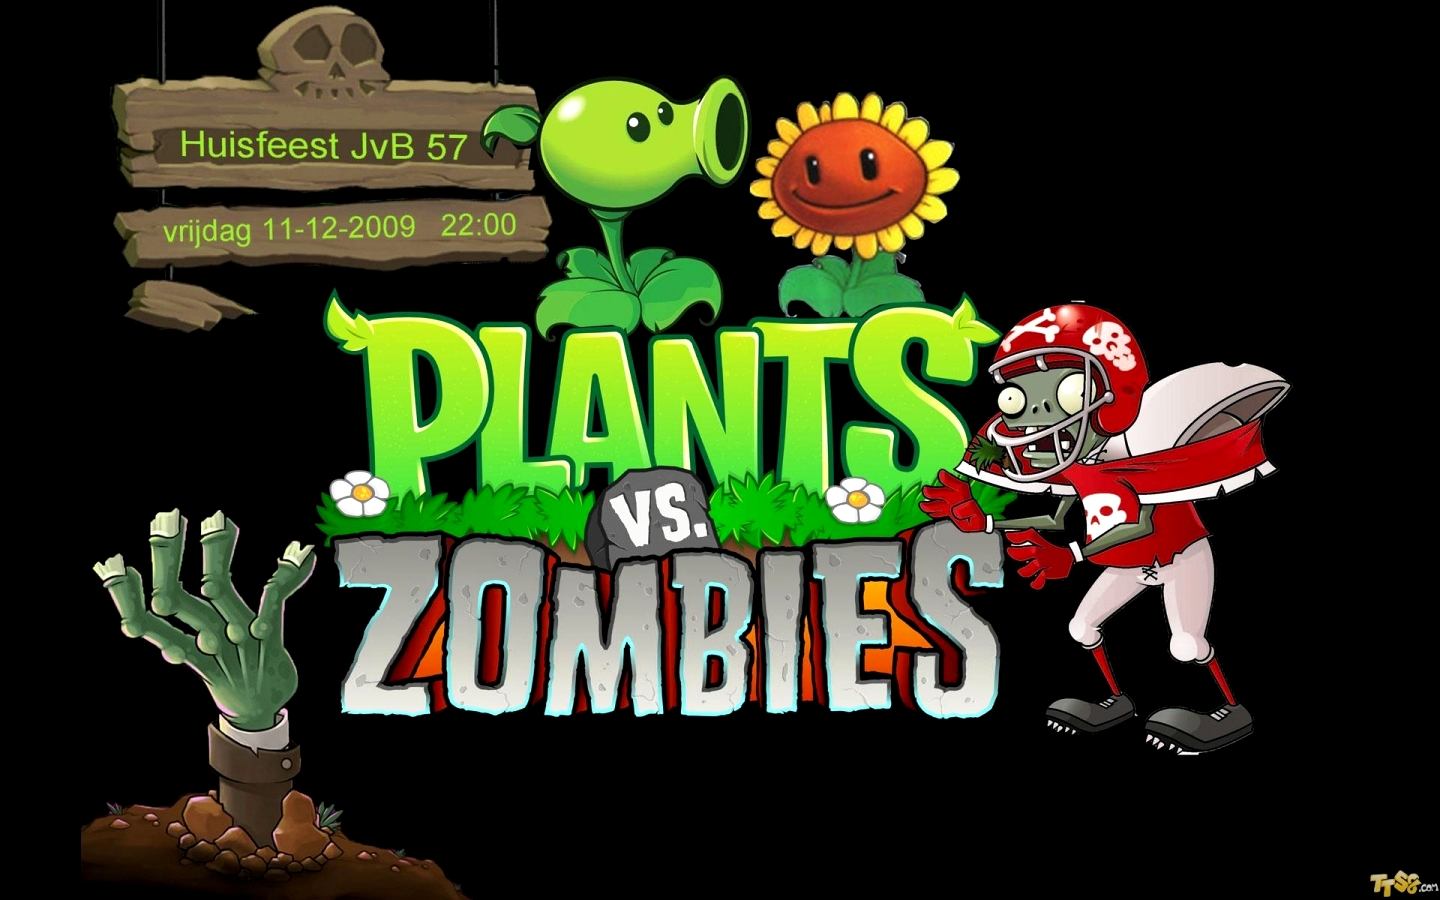 plants vs zombies wallpapersuperlakitu on deviantart 1440x900